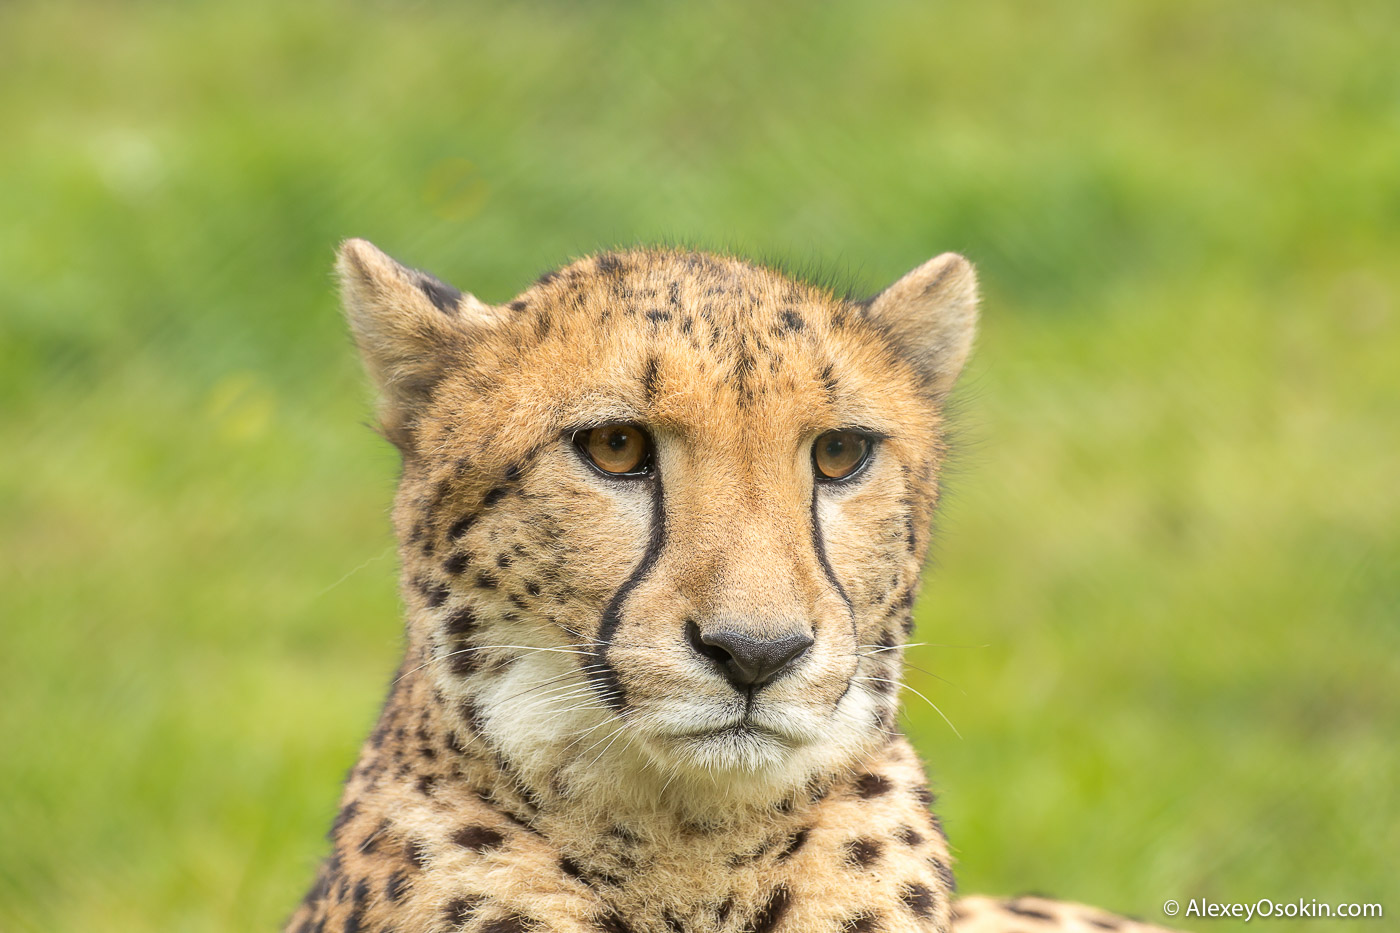 Cheetah_prague_zoo-ao-6.jpg